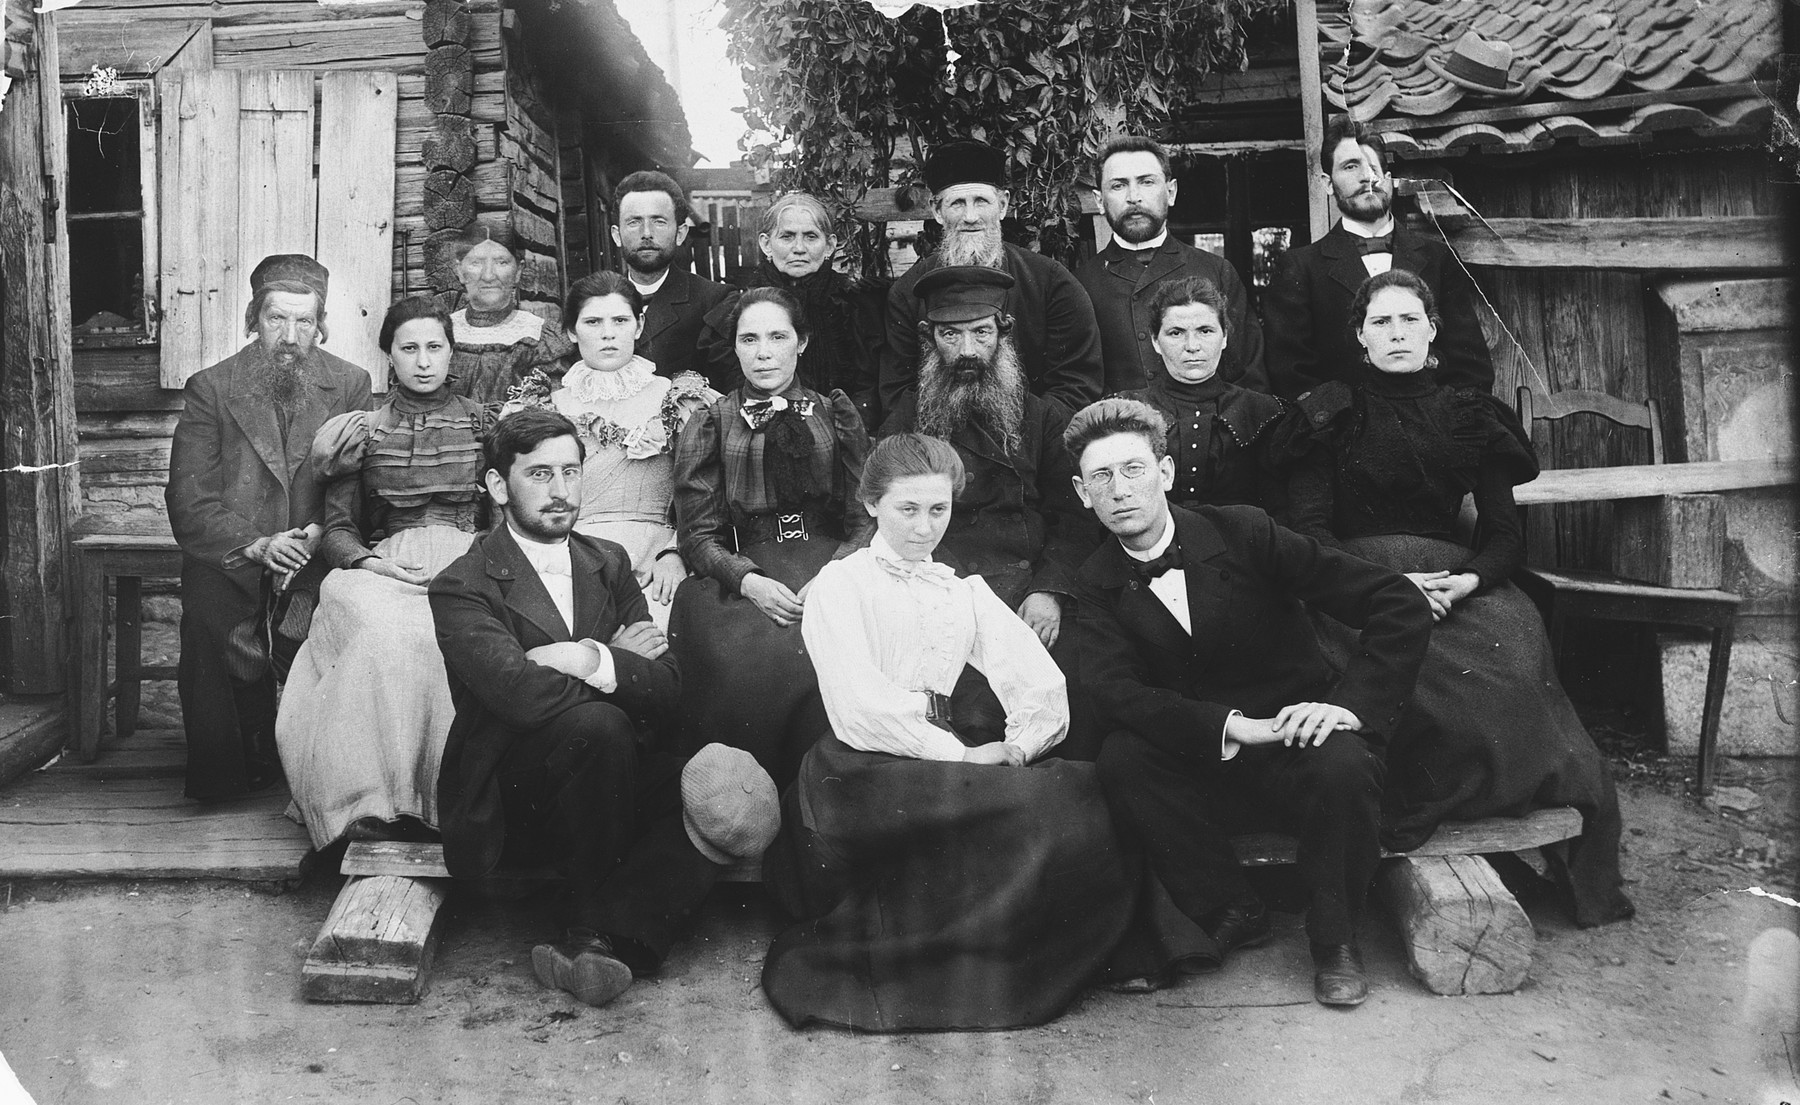 Portrait of the Magid family in front of their home in Snipishok, on the outskirts of Vilna.    Pictured is Abram (Dov Ber) Magid (bottom row, right) with his sisters Tzivia, Rivka, Rachel and Esther, and other relatives.